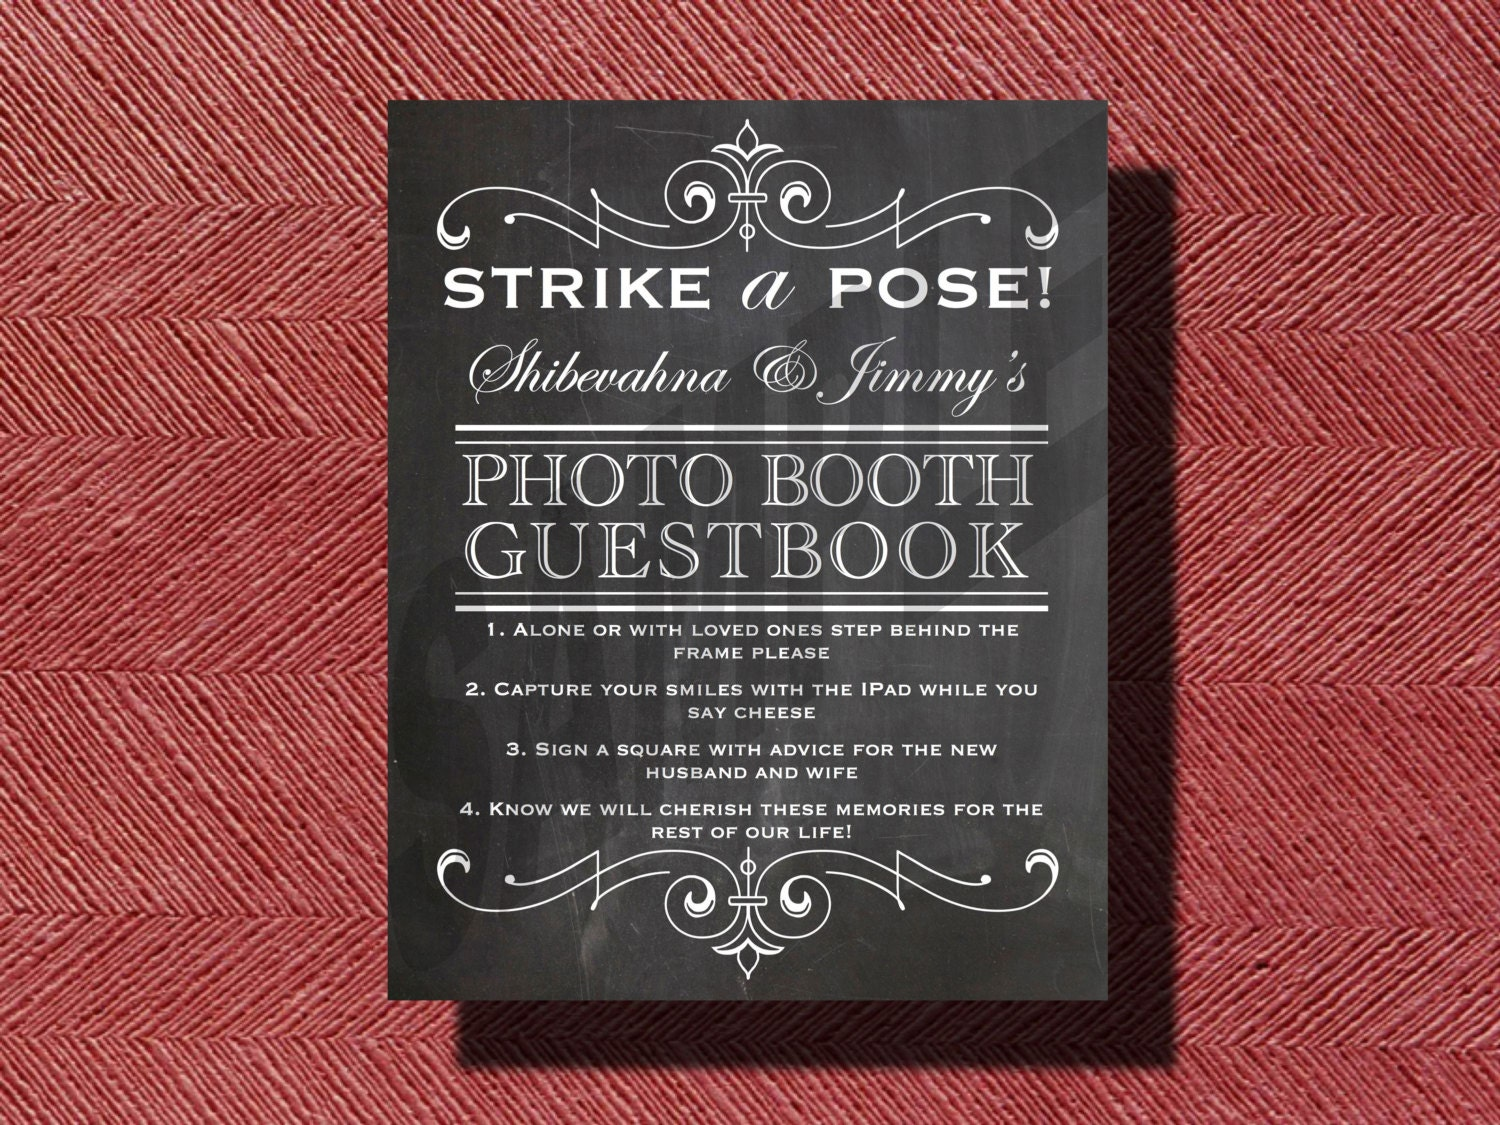 Chalkboard Wedding DIY Photo Booth Guestbook Sign | Etsy